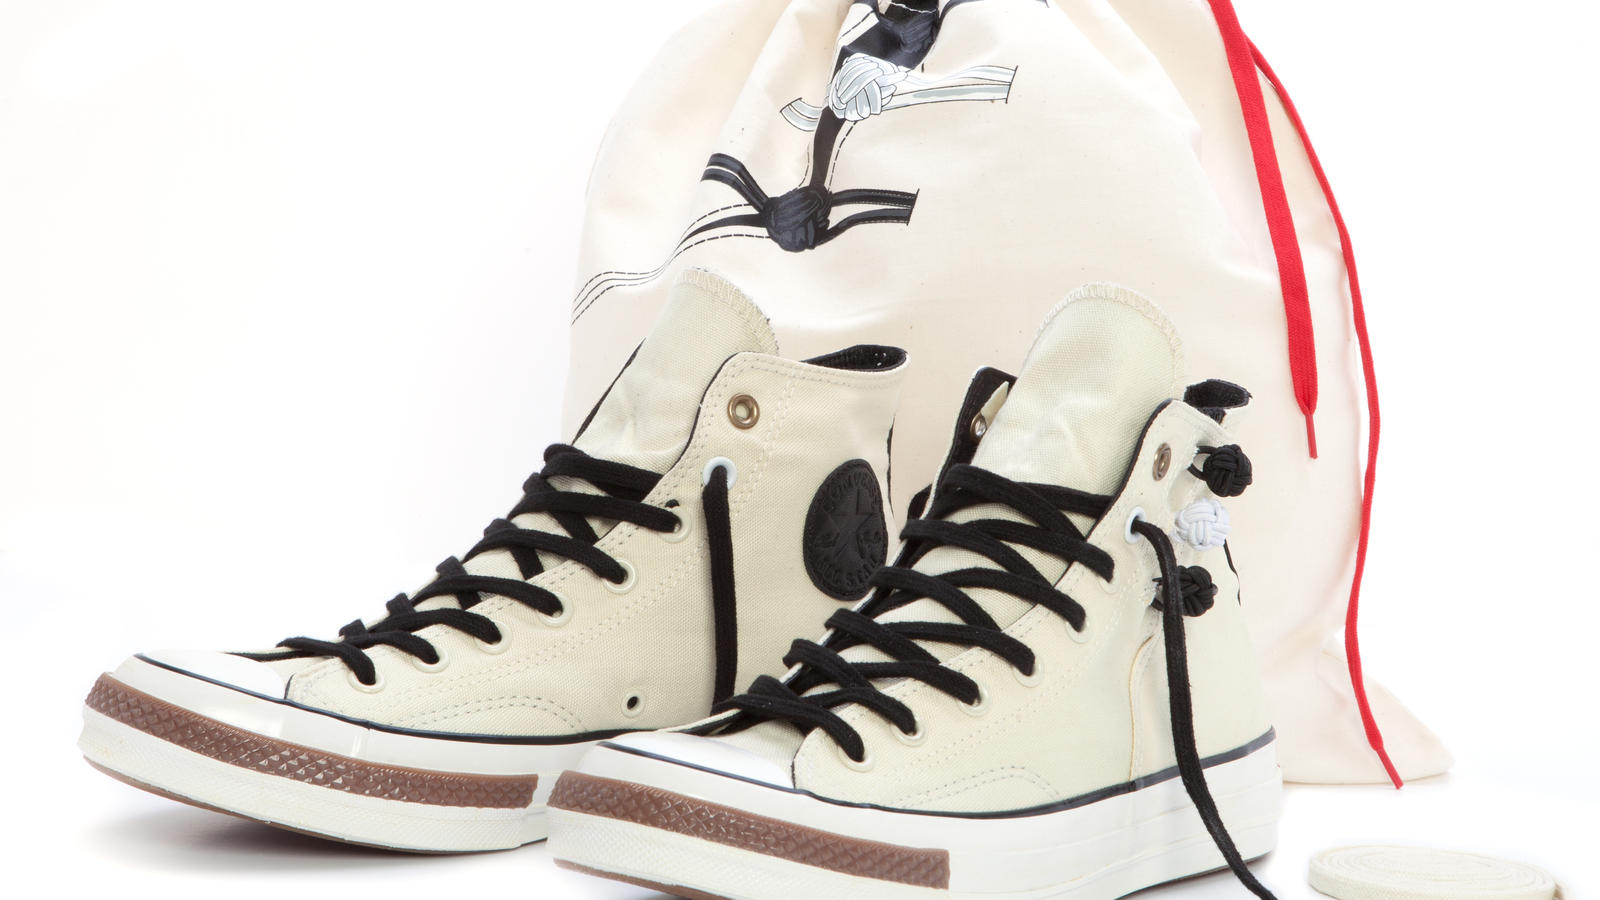 4d533b665b9 East Meets West In Celebration of Clot x Converse Chang Pao ...